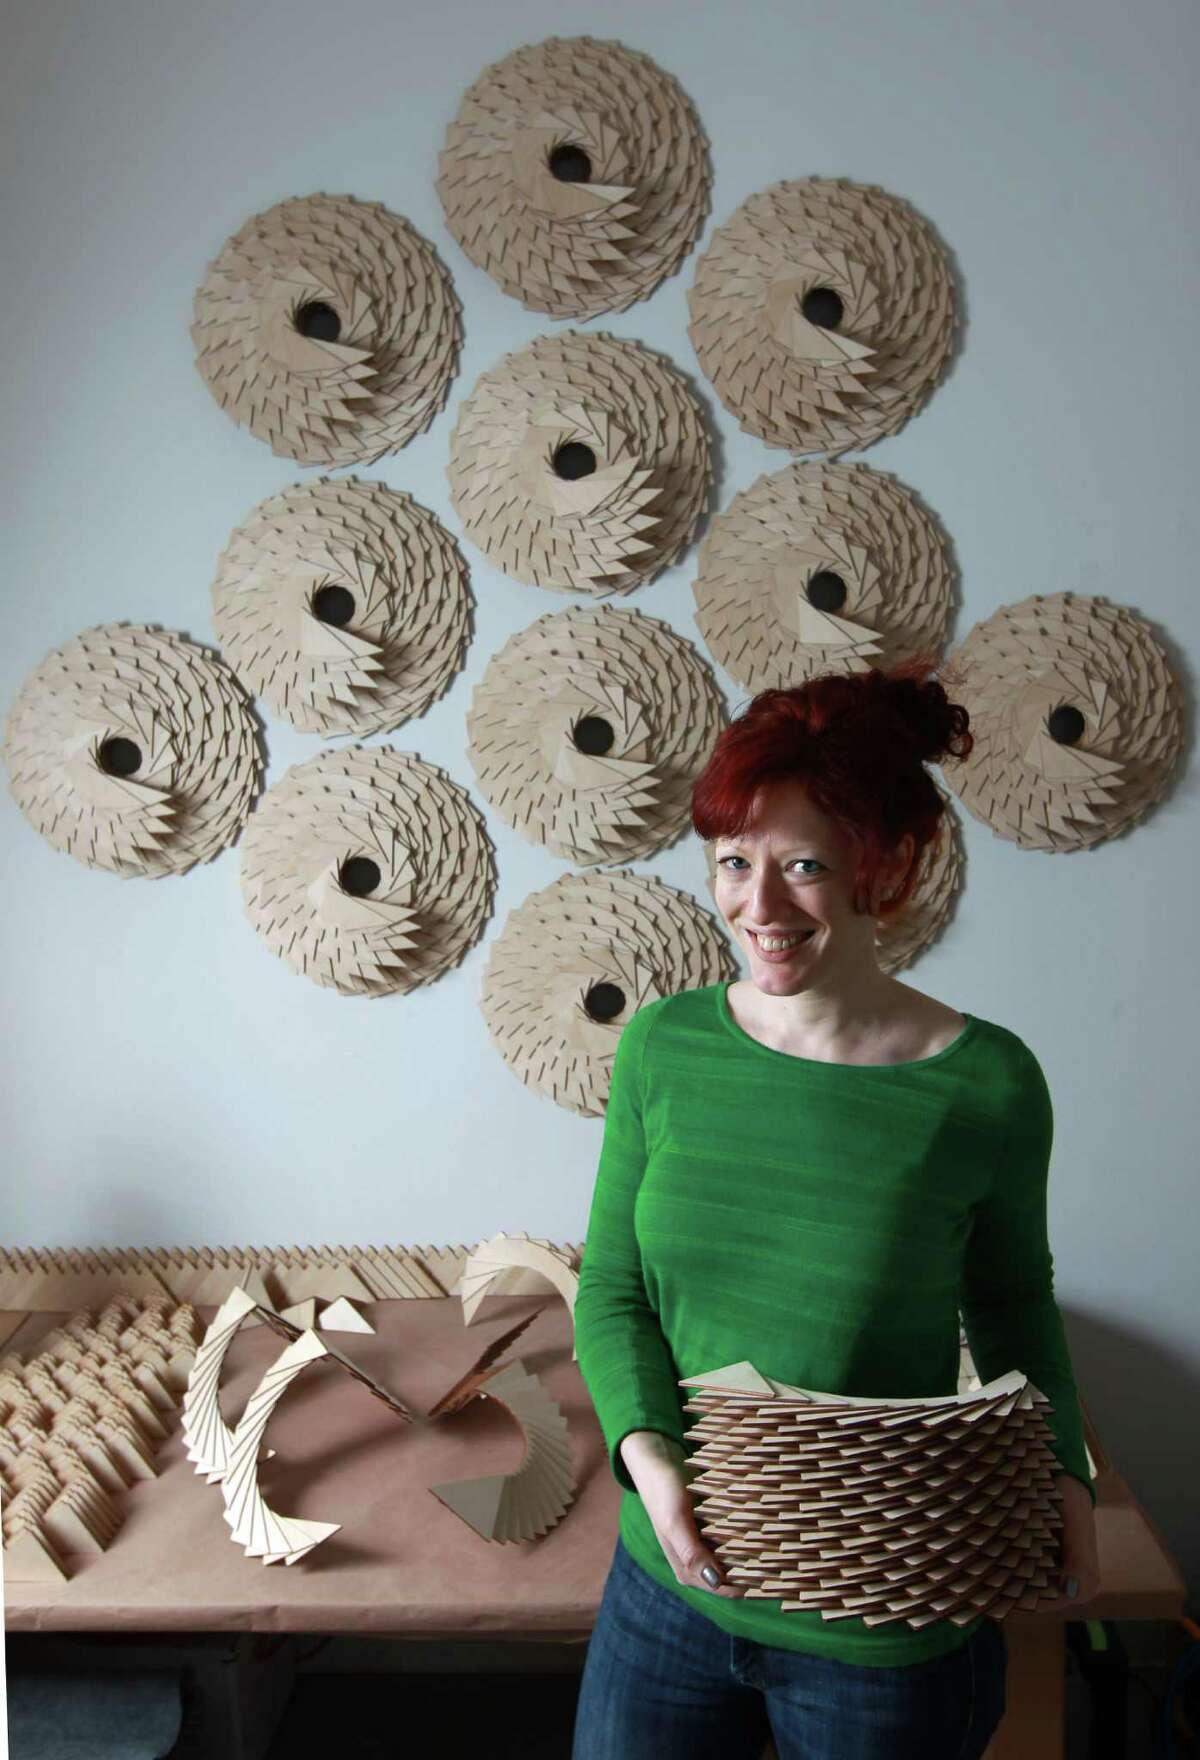 Susannah Mira posses for a portrait with her plywood sculpture that is currently untiled at the Houston Center for Contemporary Craft on Friday, May 3, 2013, in Houston. ( J. Patric Schneider / For the Chronicle )